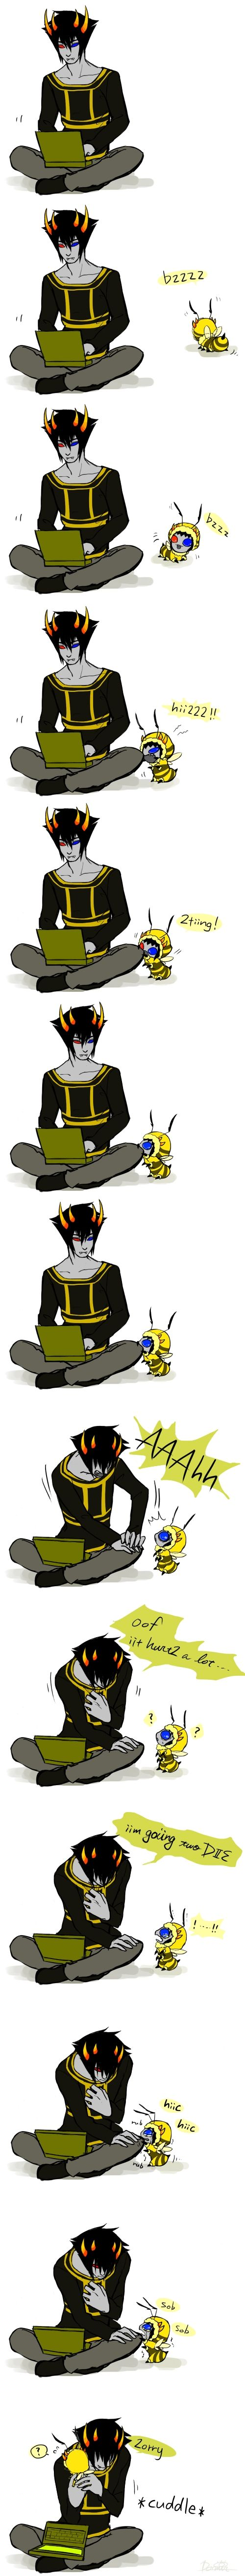 Tags: Anime, Computer, Laptop, Adorably Cute, Indian Style Sitting, Homestuck, Sollux Captor